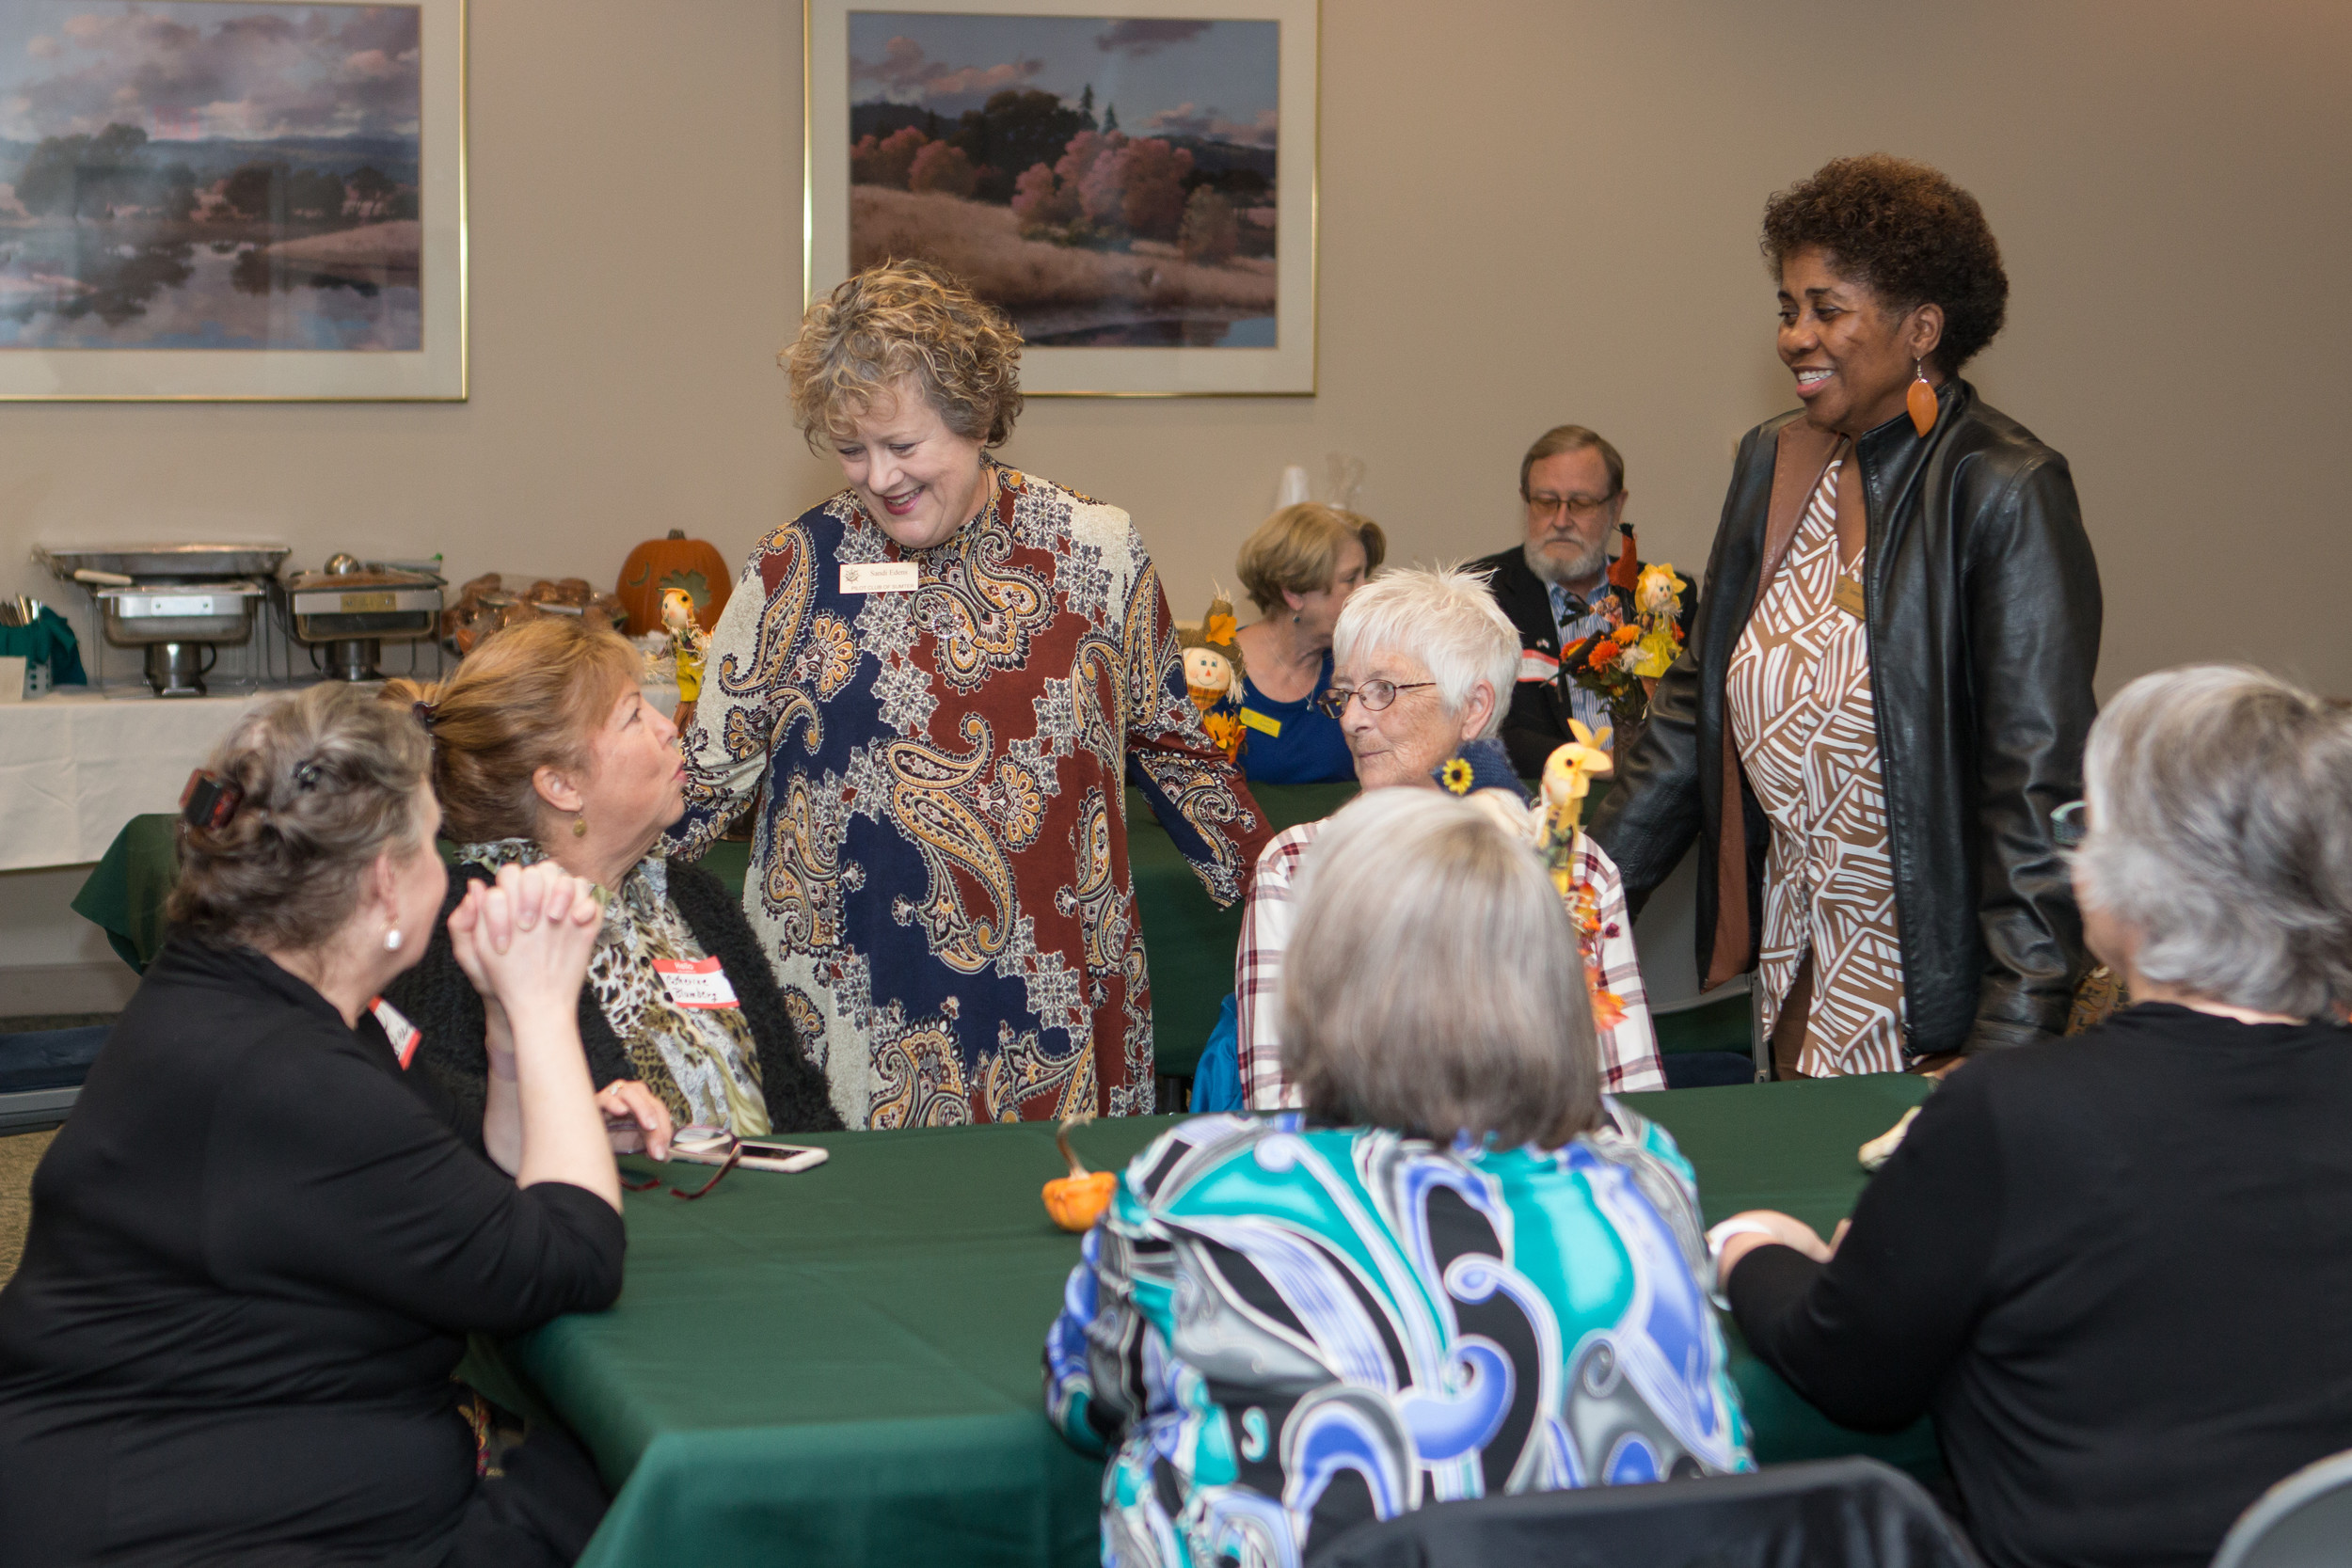 Sandi Edens, president of the Sumter Pilot Club, along with Noreen Wall, president-elect, greet caregivers during a luncheon held in their honor on Wednesday at Palmetto Health Tuomey. Palmetto Health Tuomey and the Pilot Club of Sumter hosted the third-annual Caregiver Luncheon to honor unpaid caregivers for their hard work and dedication in caring for their loved ones throughout the community.